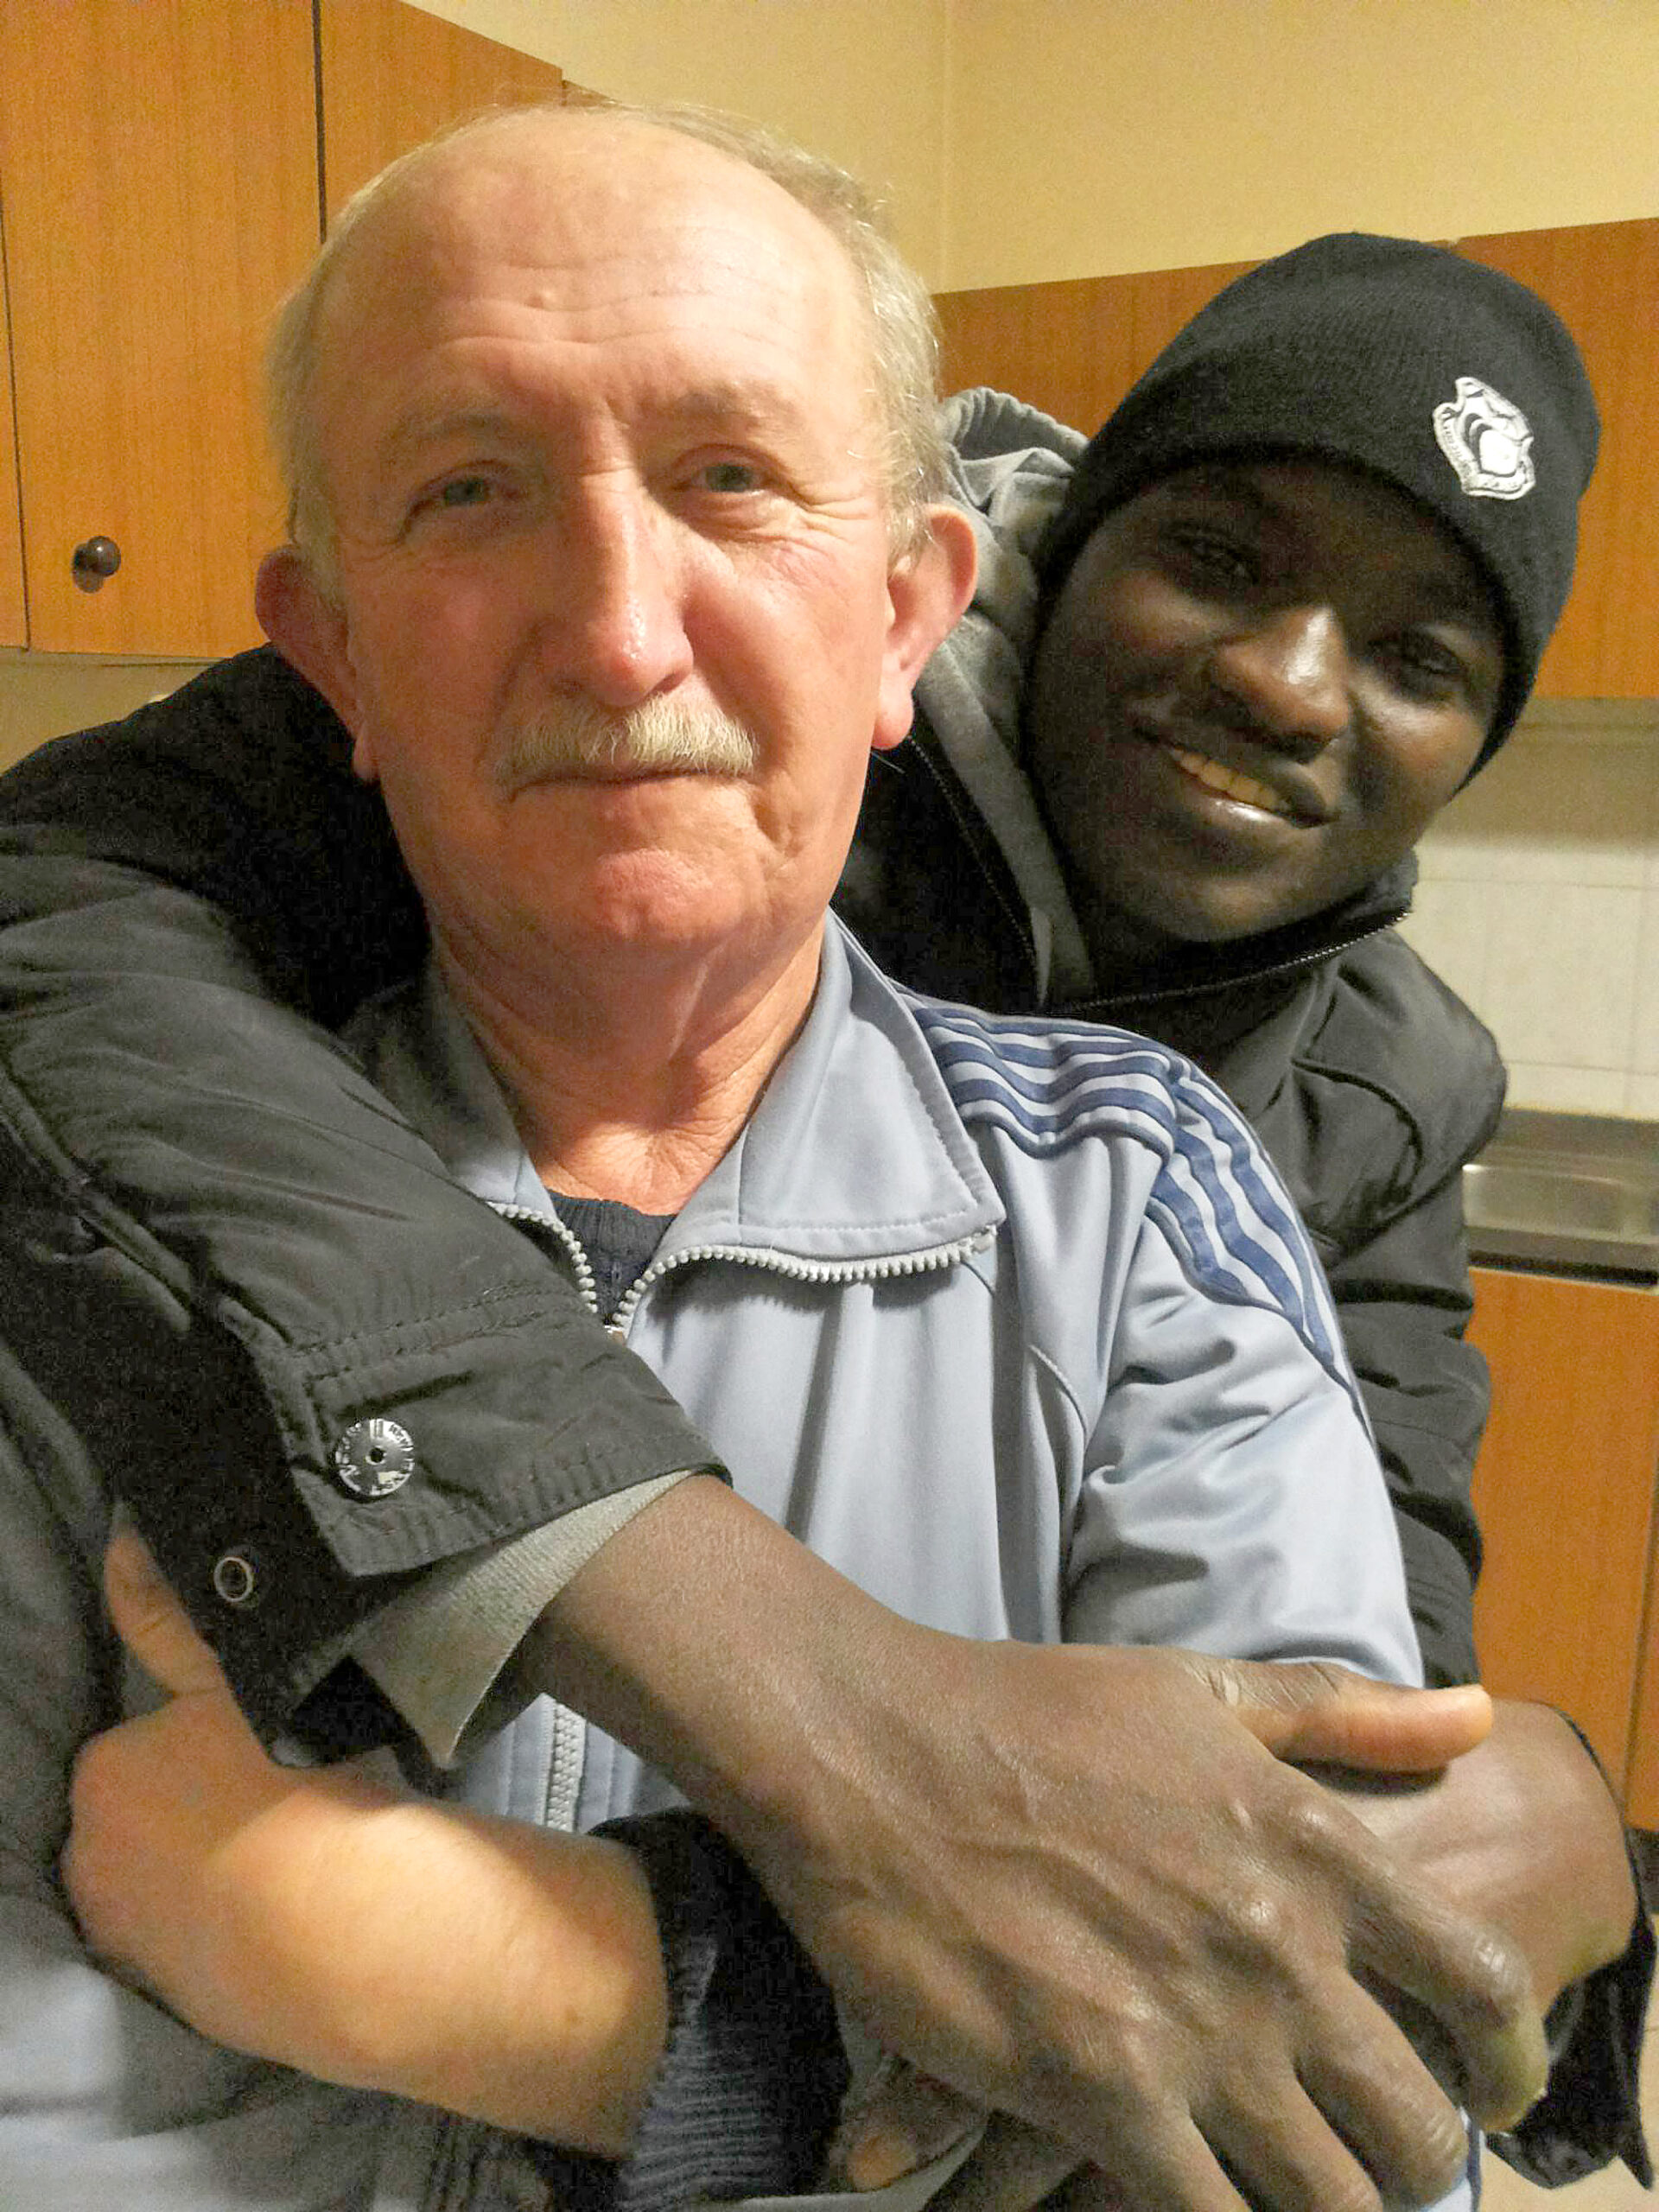 African Immigrant In Italy Remembers Elderly Man Who Bought Him School Books And Helped With Studies